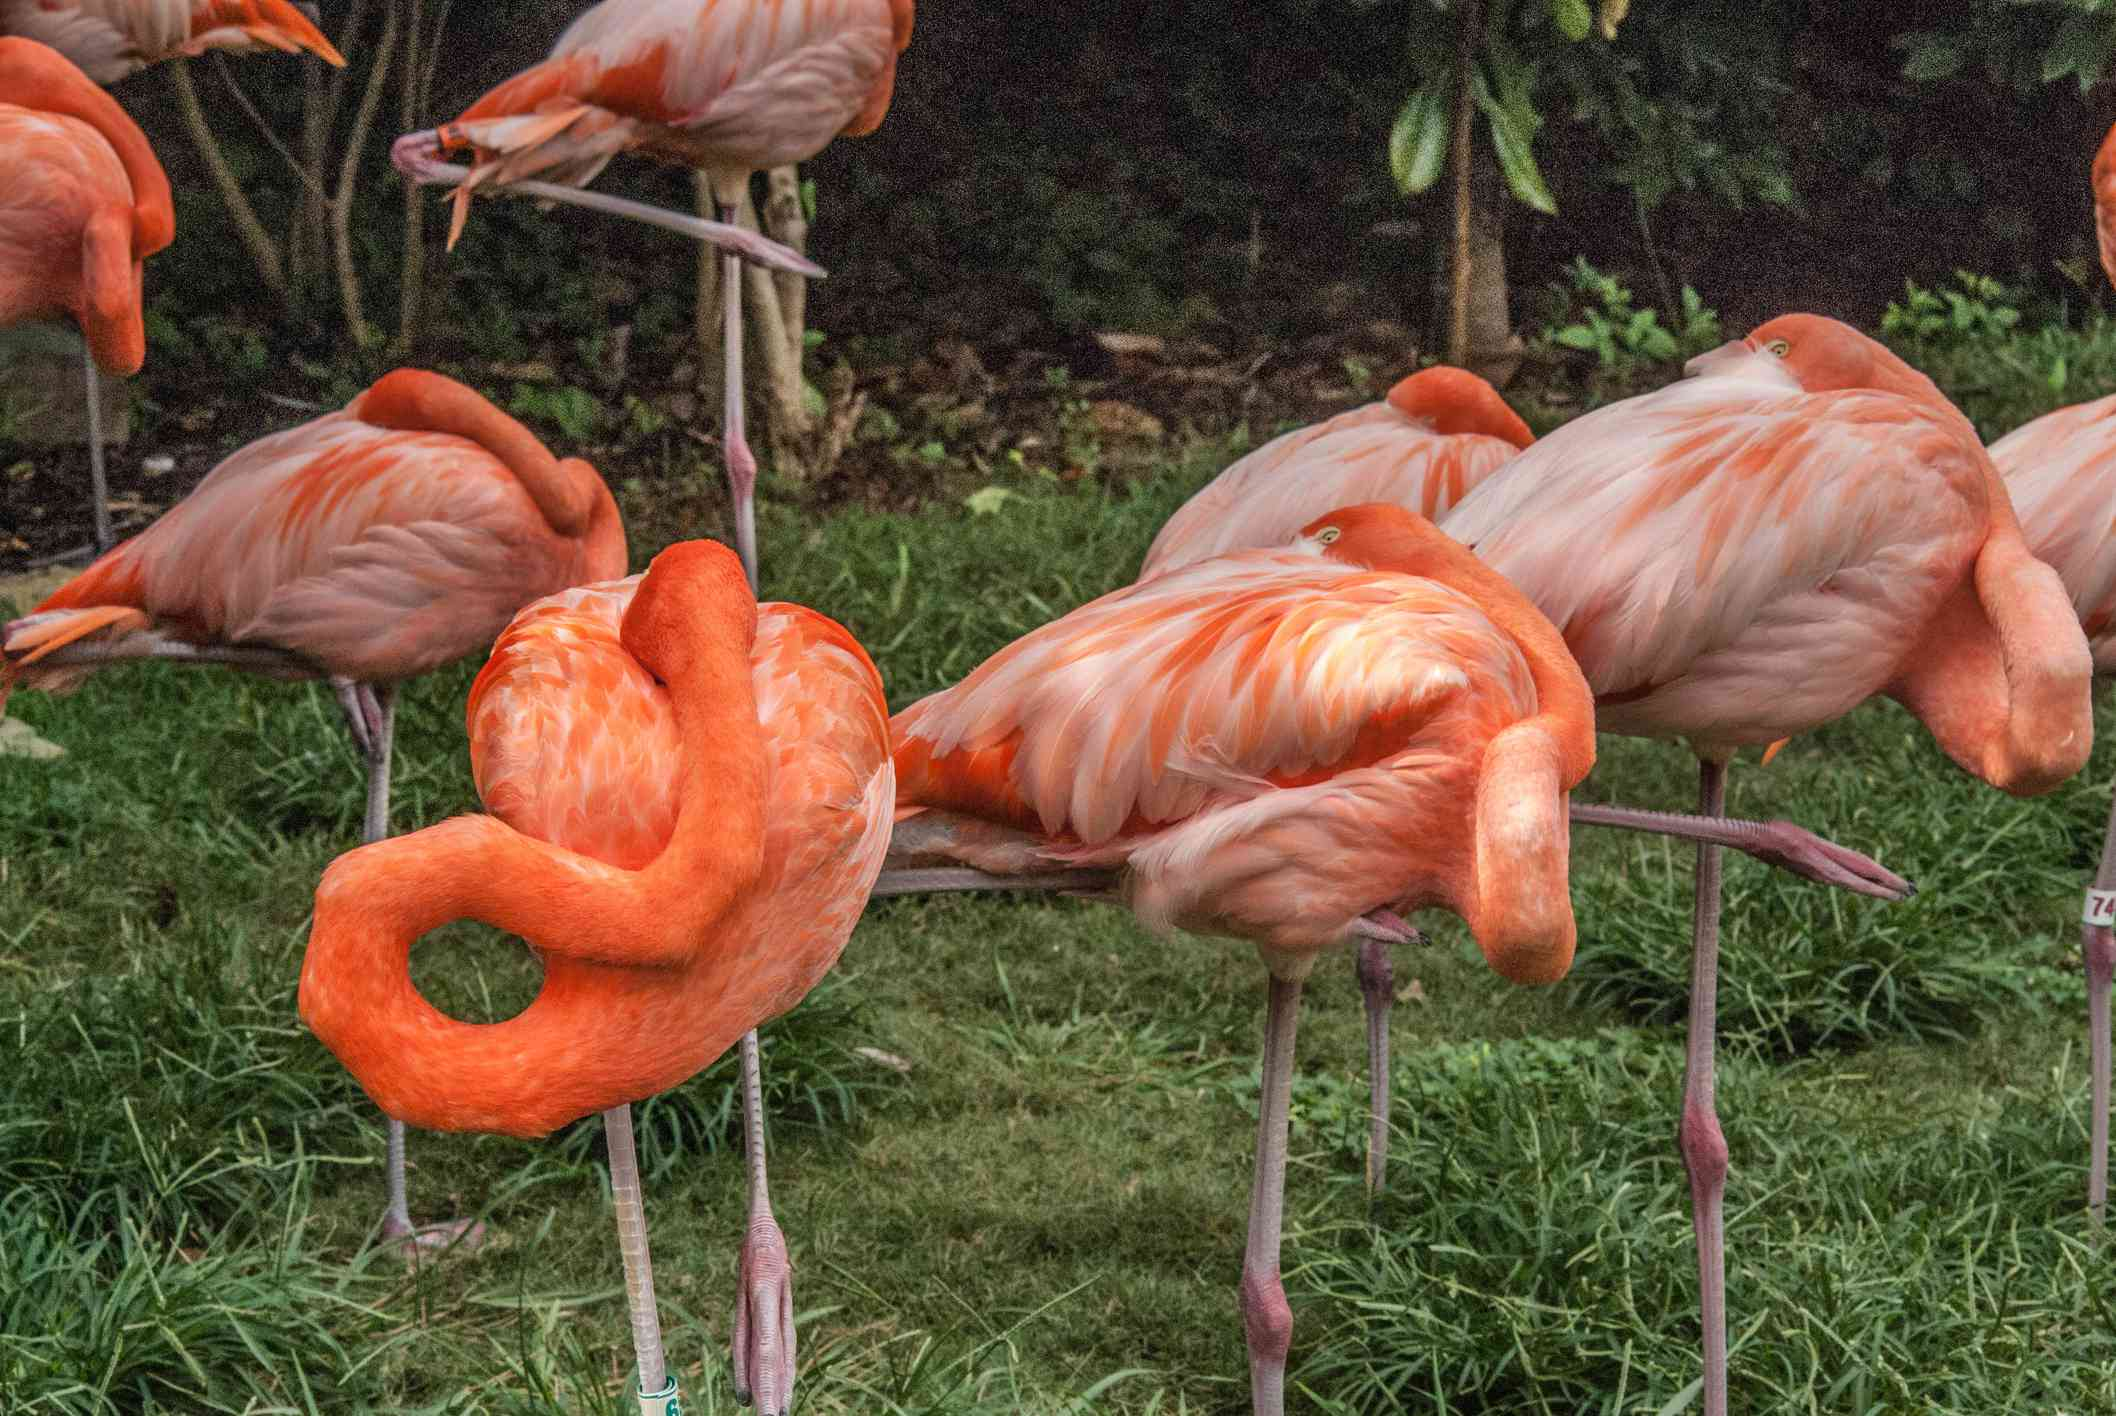 A bunch of flamingos sleeping with one leg up and their heads resting on their bodies at Nashville Zoo in Grossmere